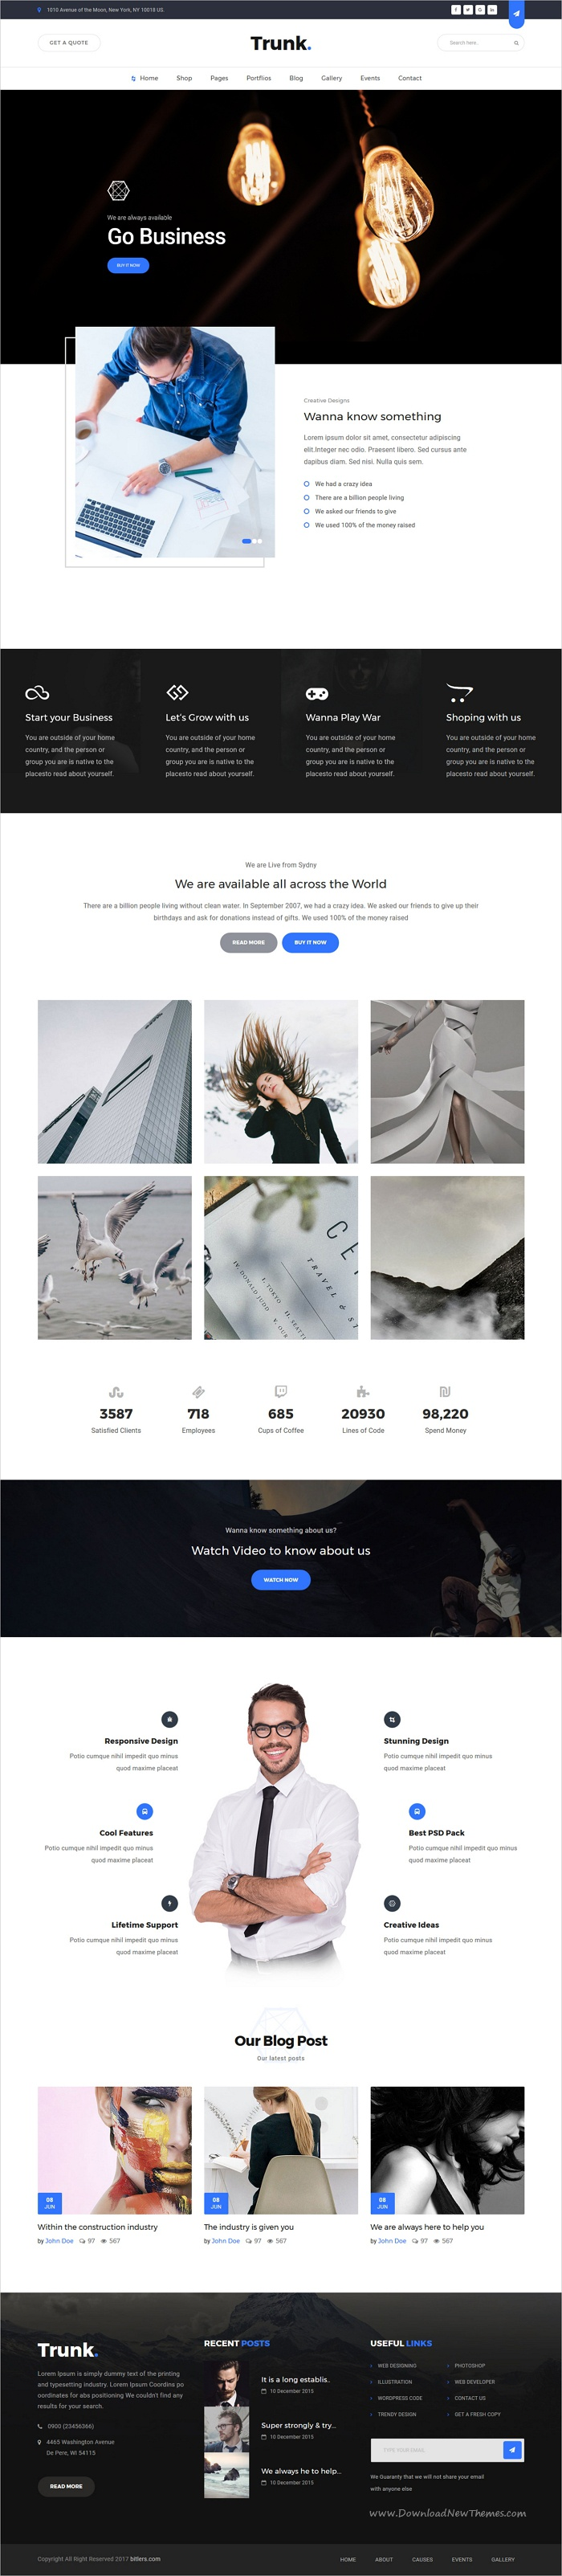 Trunk - Multipurpose Business and Corporate HTML Template